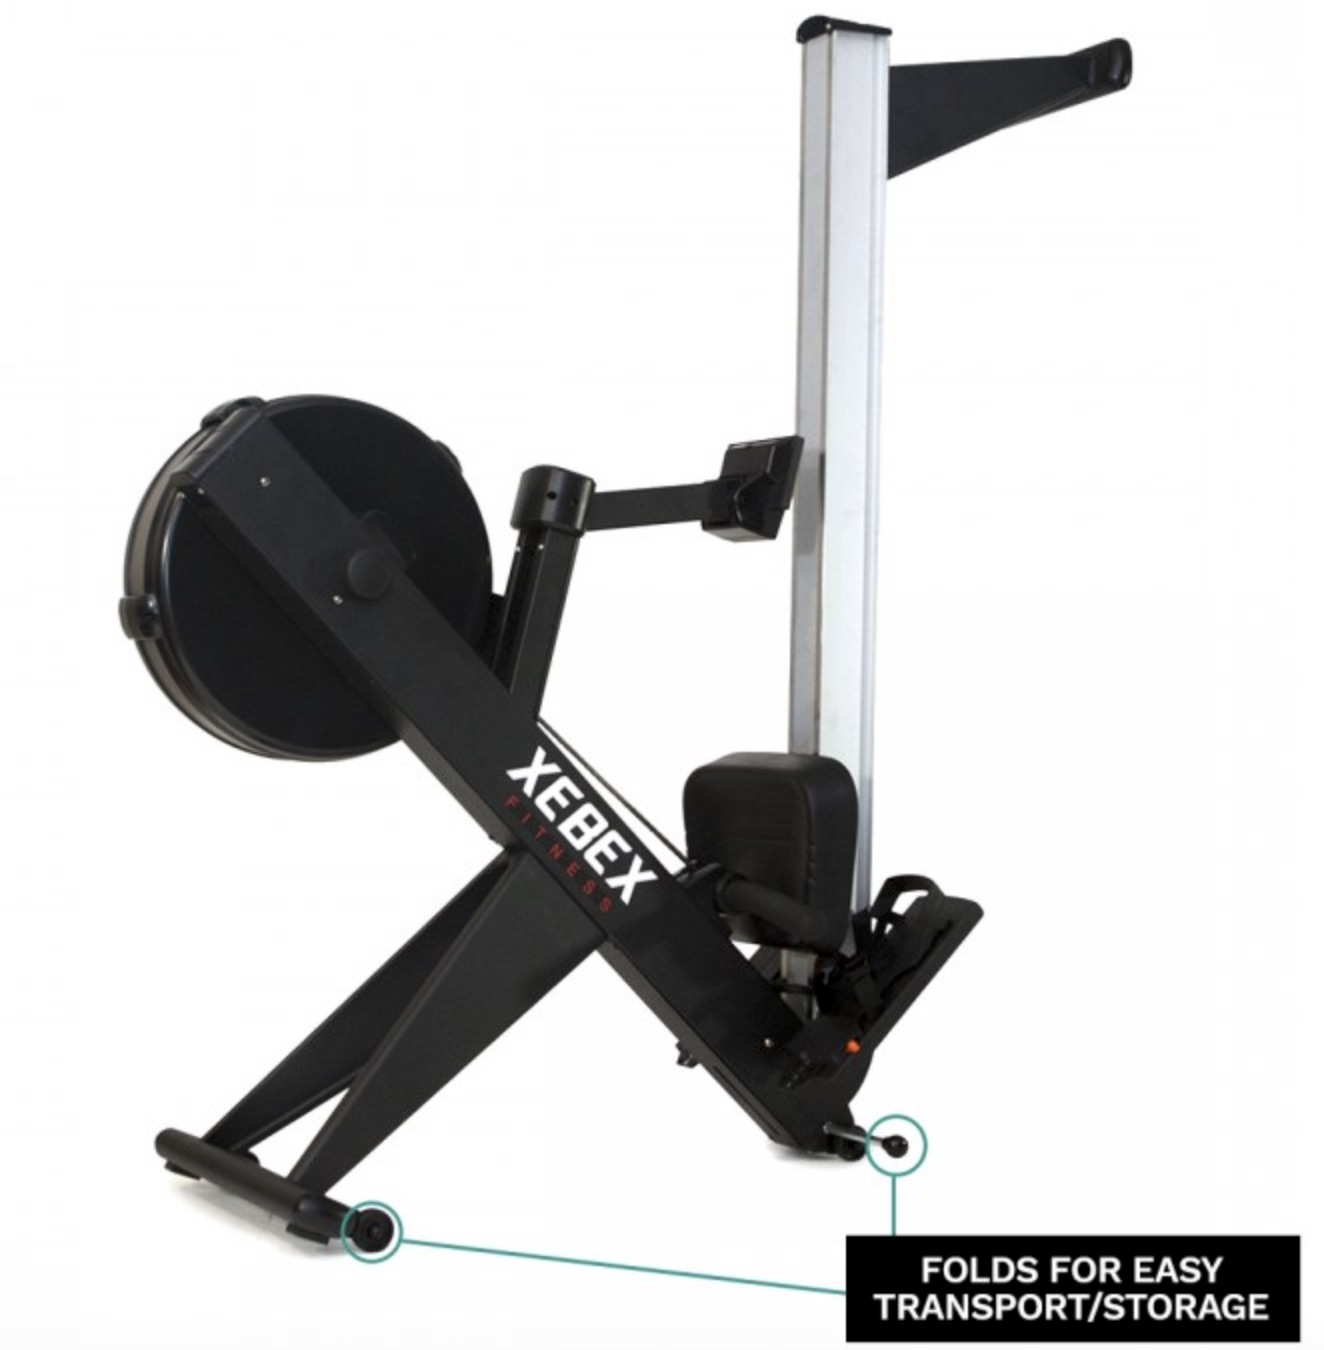 Xebex Air Rower Storage